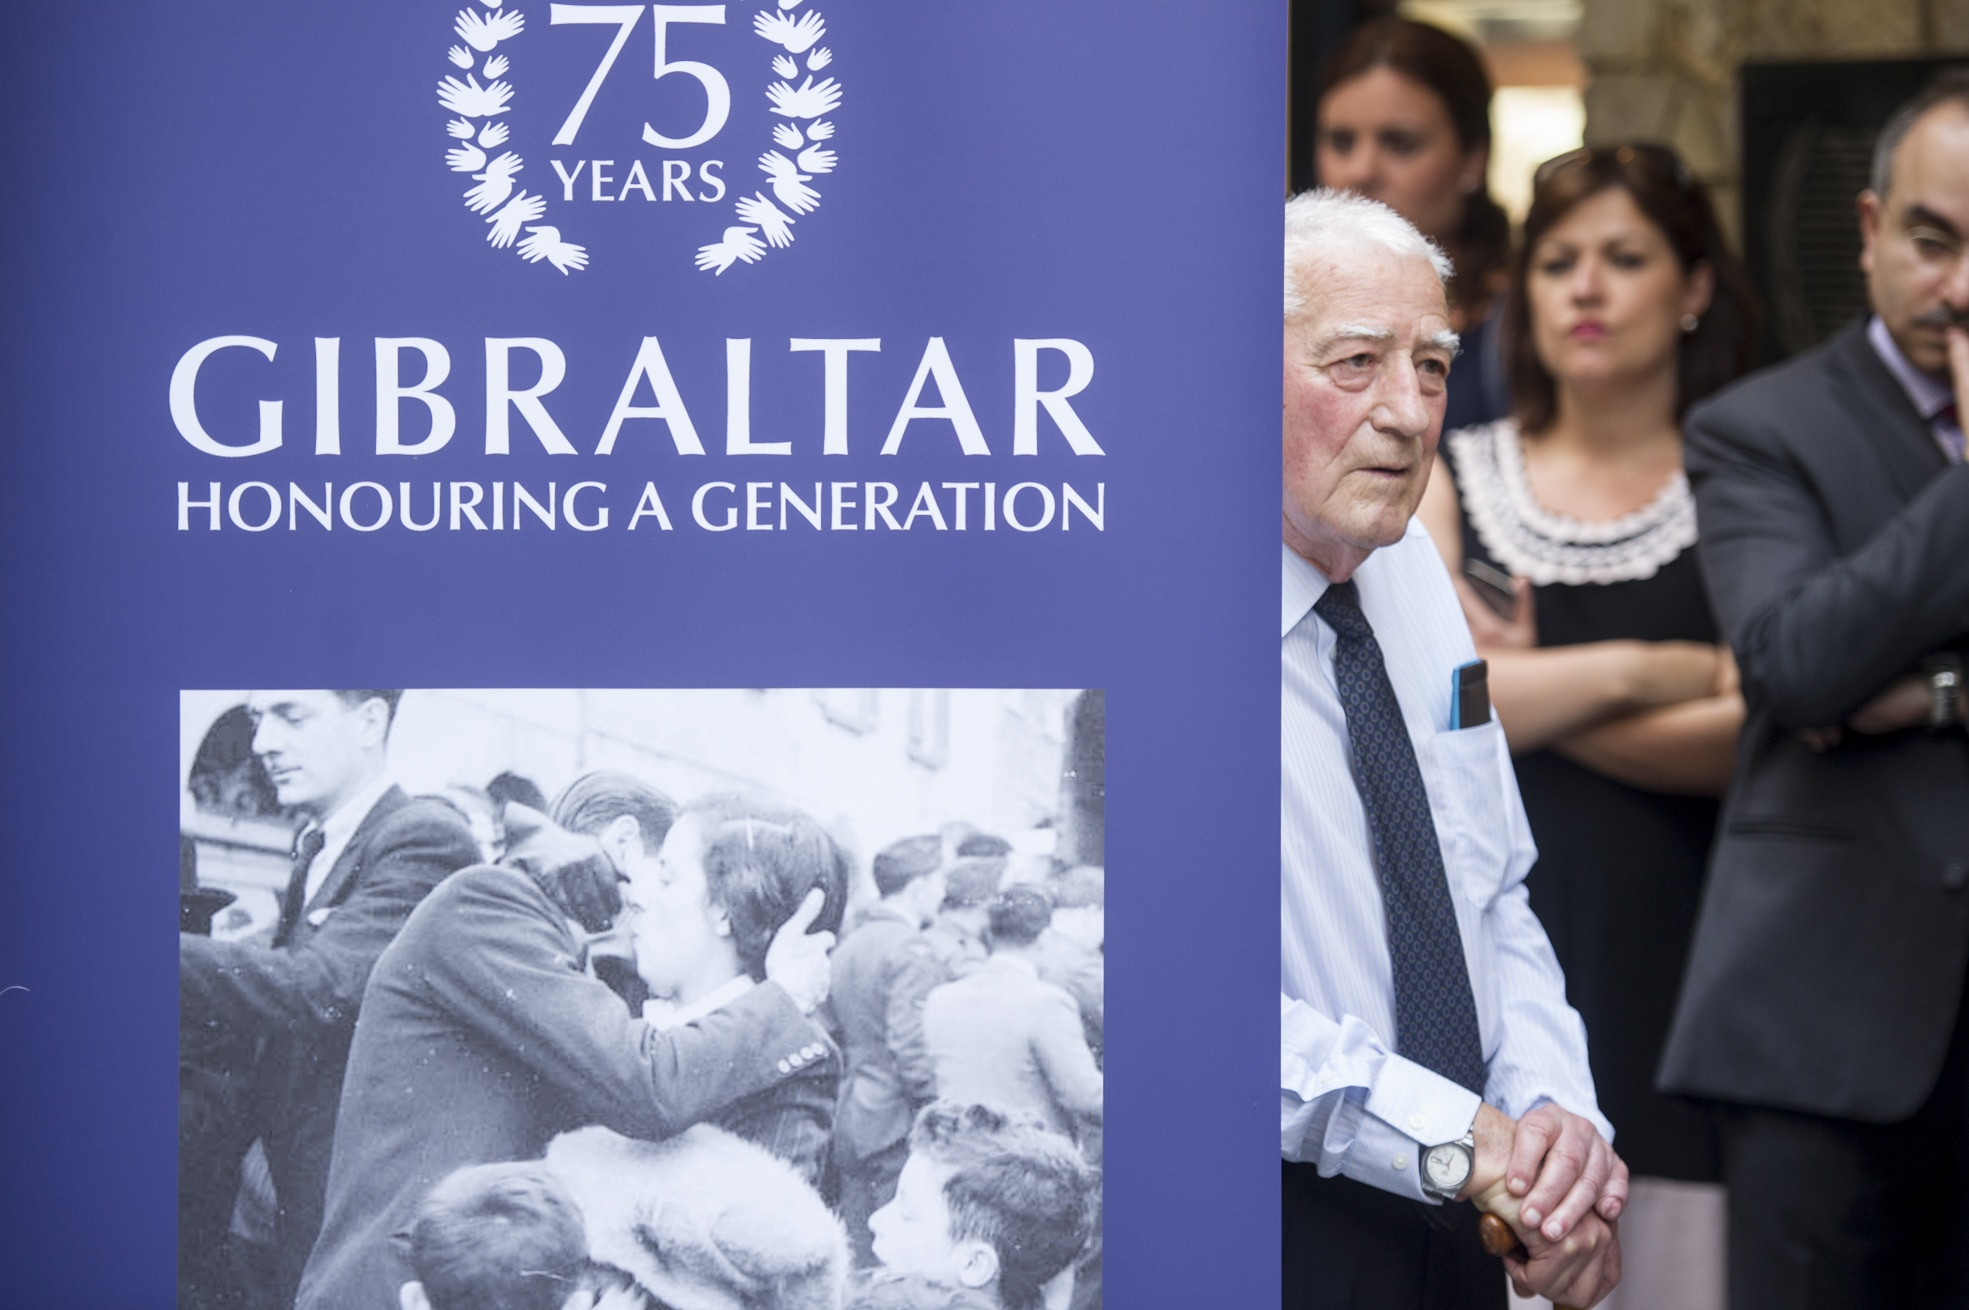 75-years-gibraltar-honouring-generation-37_17560588931_o